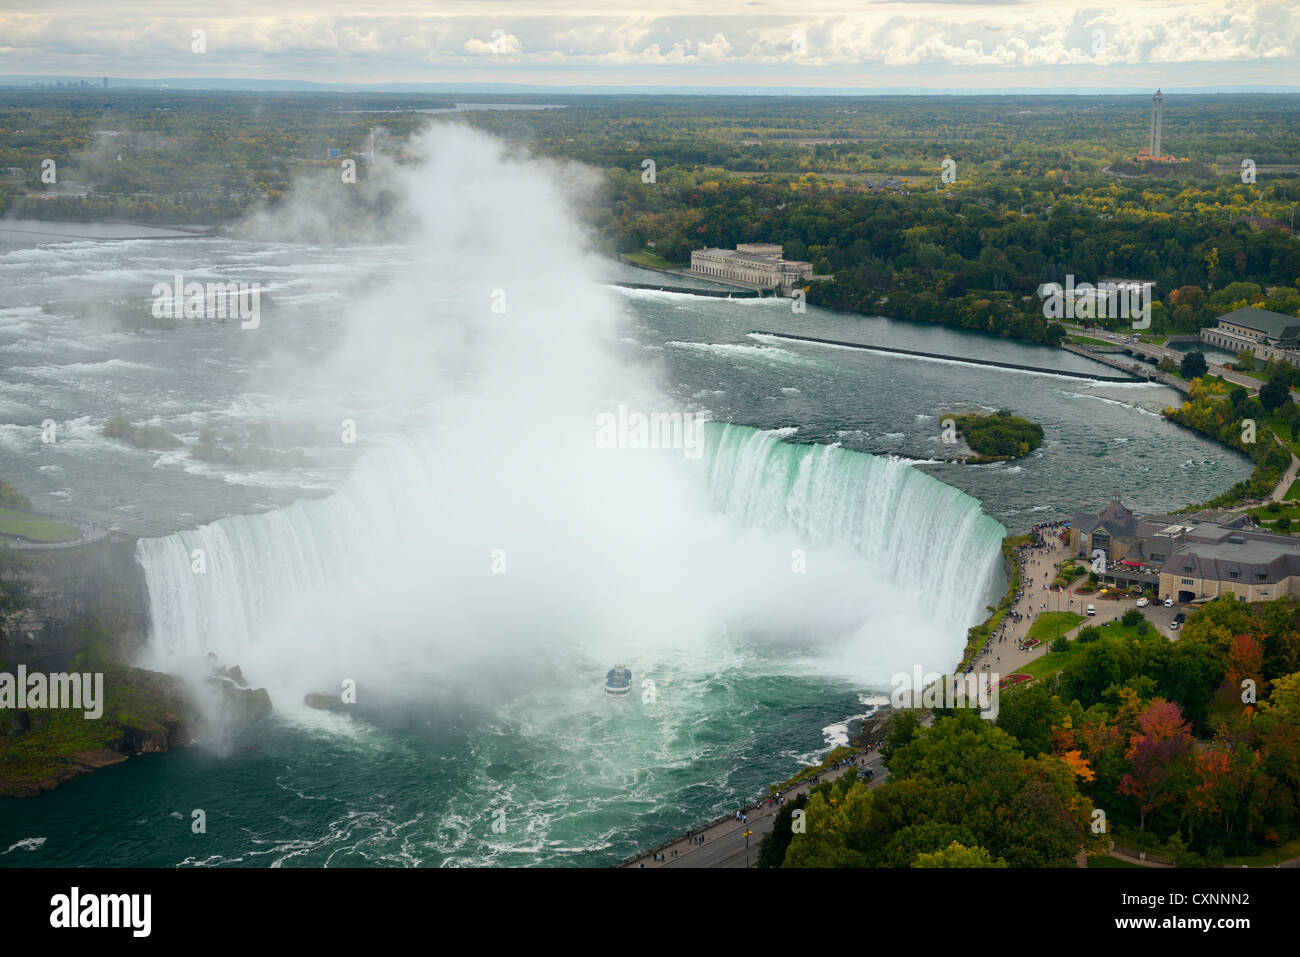 Aerial view of Canadian Horseshoe Falls and Table Rock Welcome Centre at Niagara Falls Ontario Canada - Stock Image